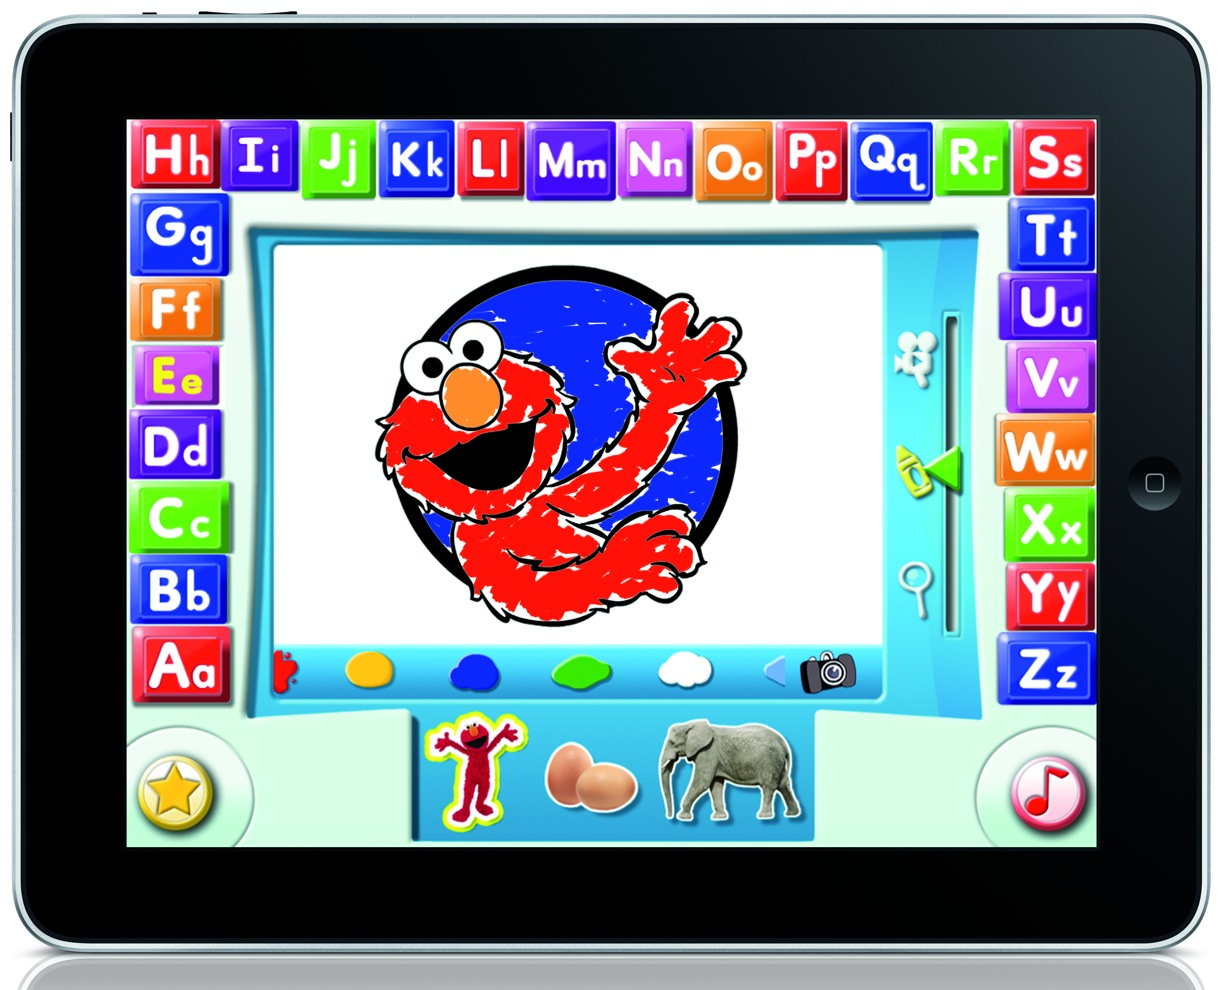 Elmo loves abcs ipad app teaches kids about alphabet, coloring pages i love you mom